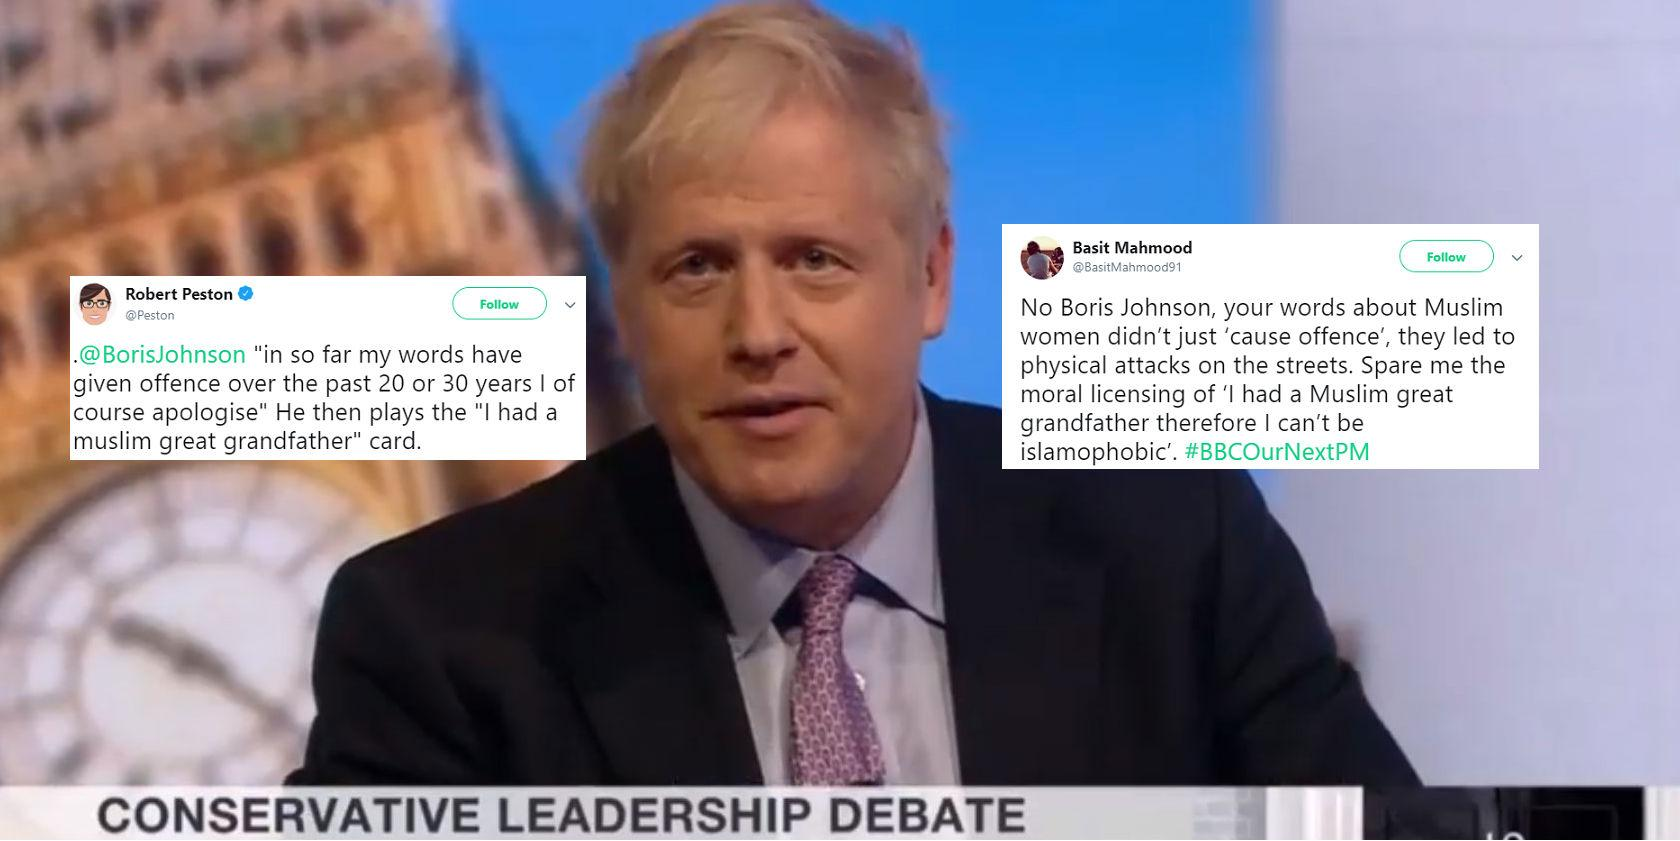 Tory leadership debate: Boris Johnson's gave worst excuse